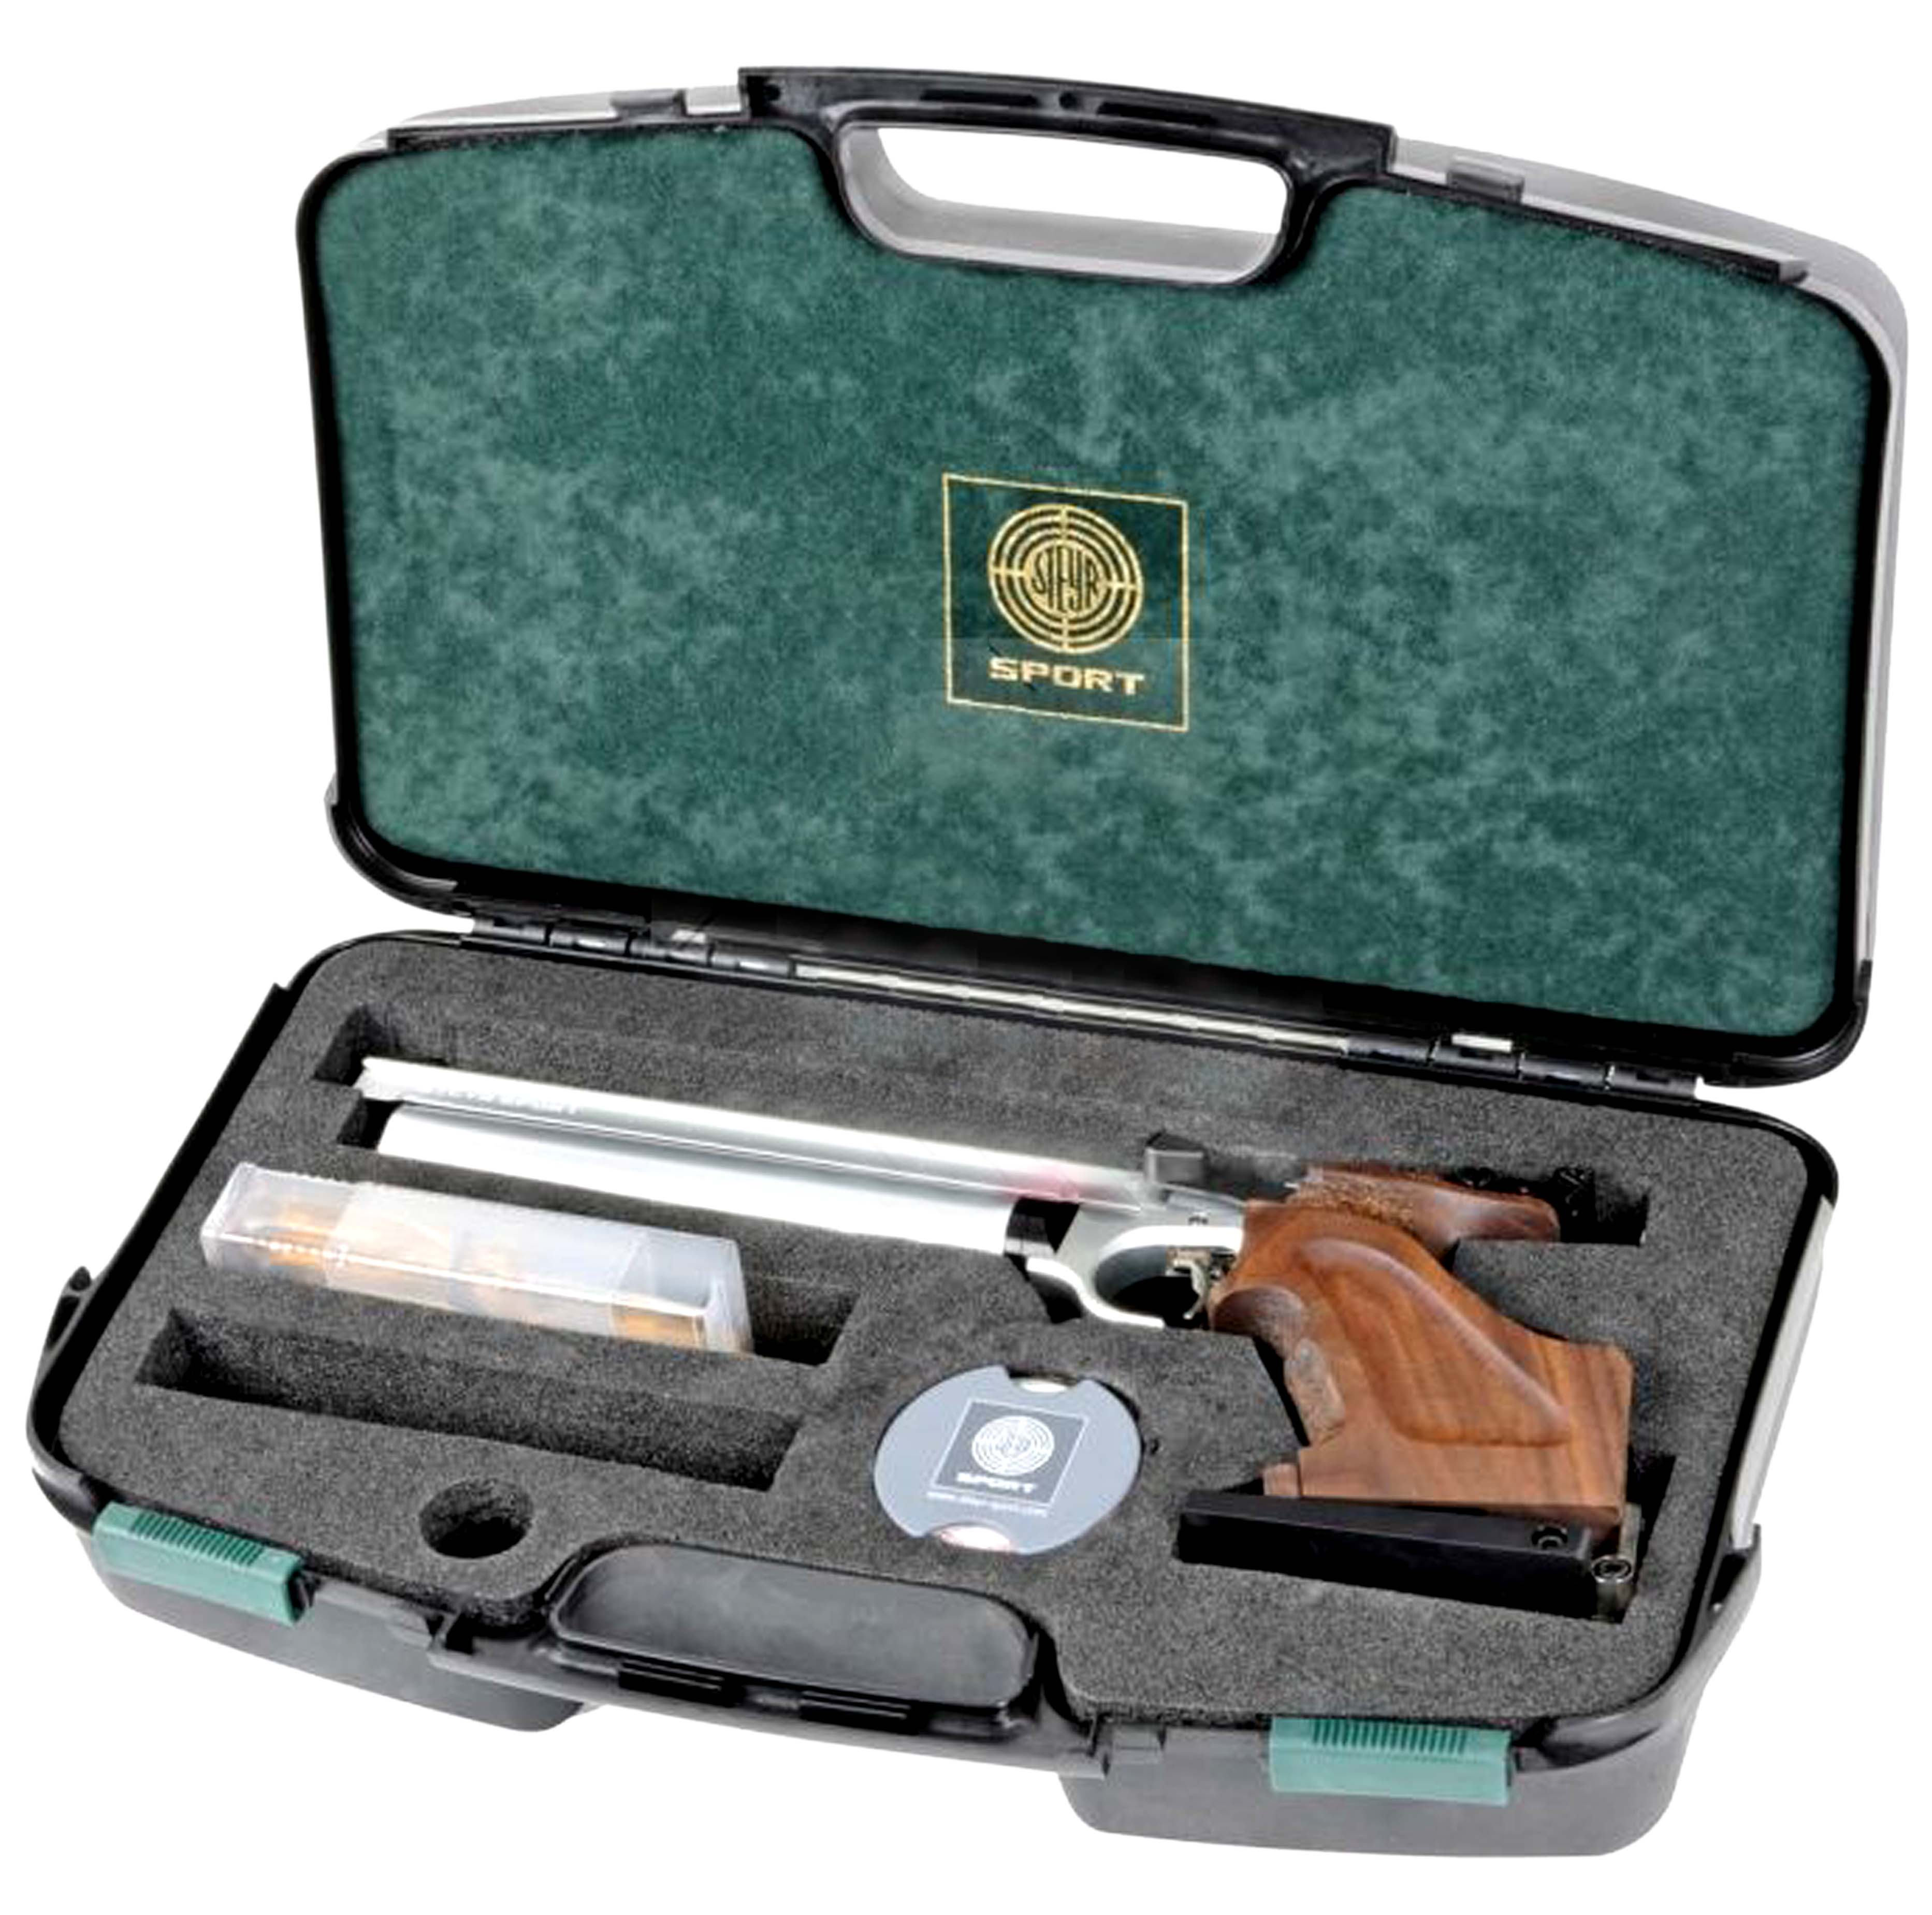 Steyr Plastic Pistol Hard Case - Click Image to Close